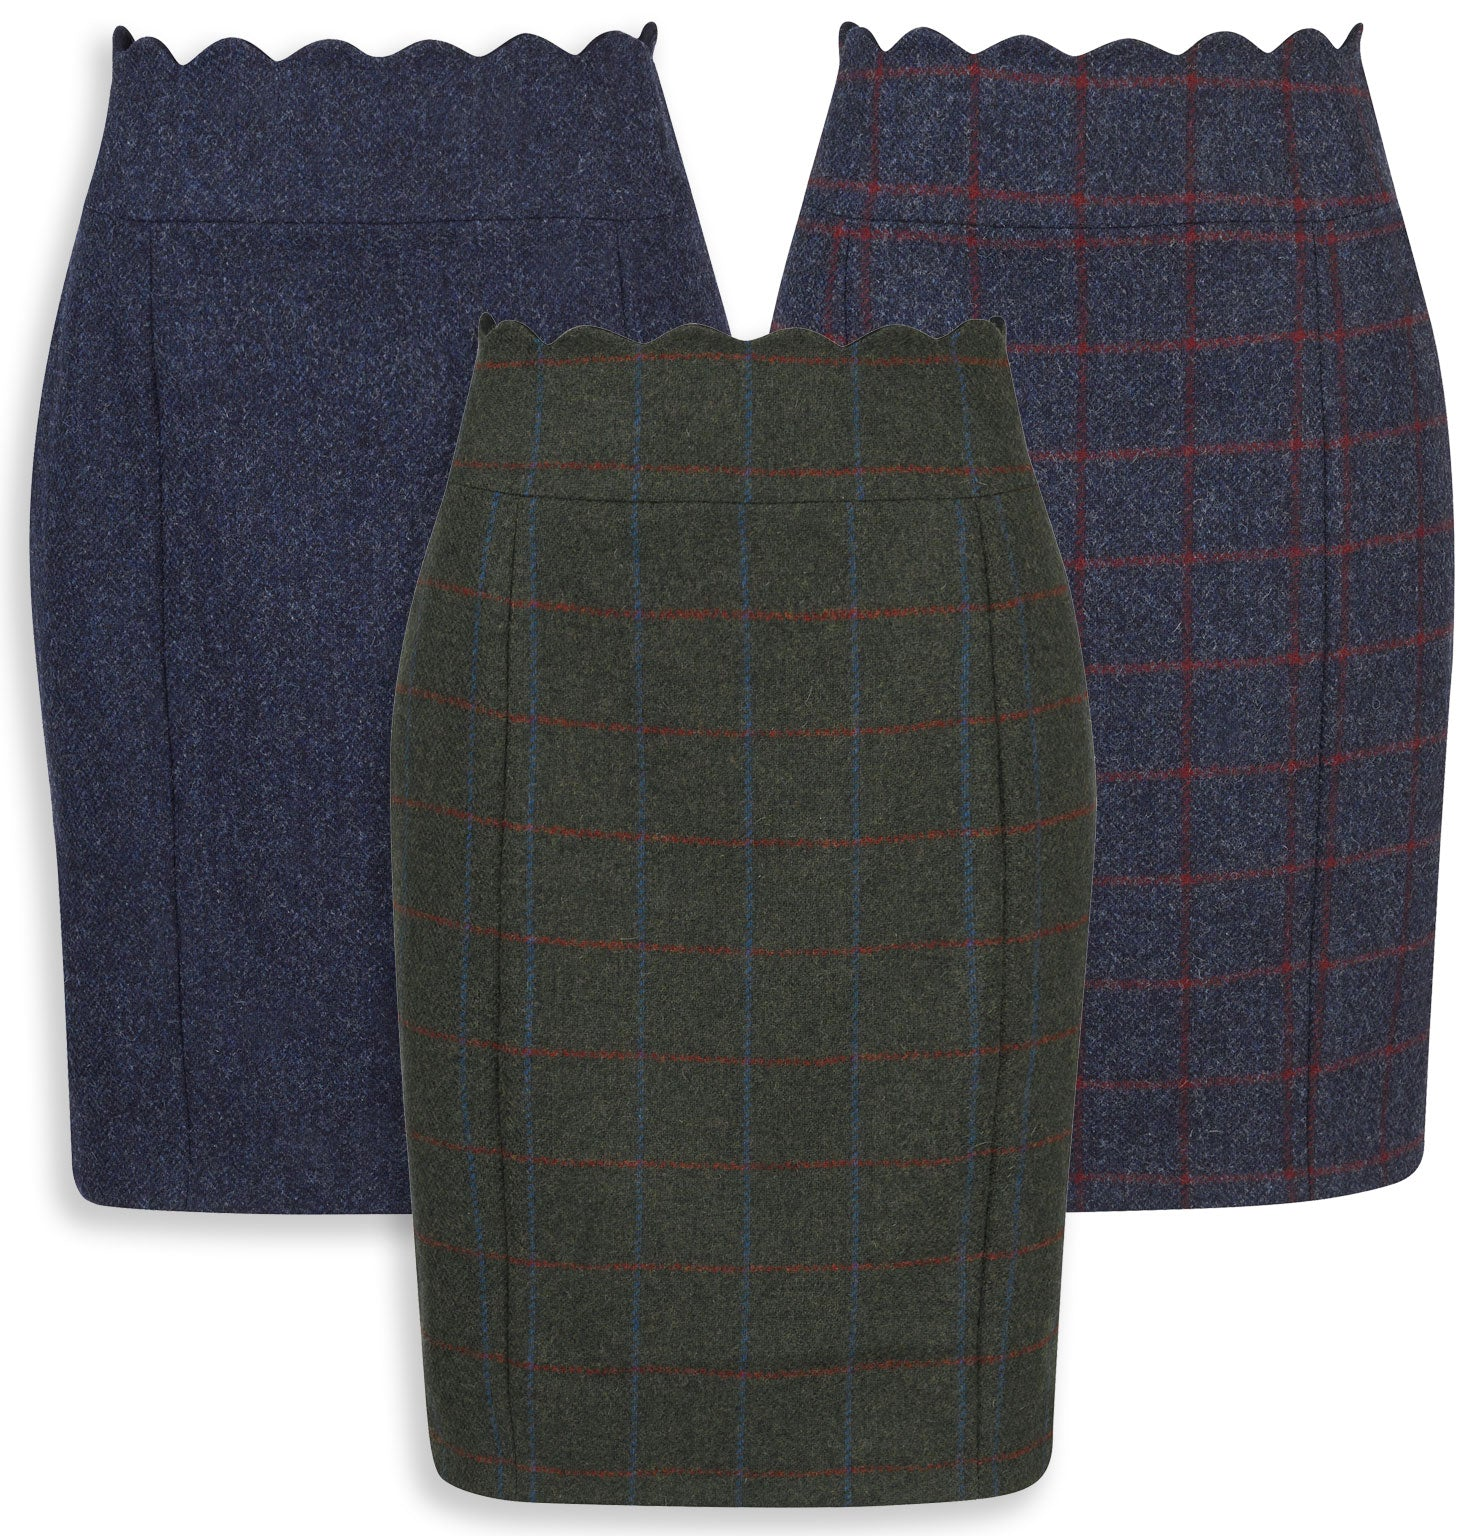 Jack Murphy Taylor Tweed Skirt Navy Herringbone, Green Herringbone Check and Navy Herringbone Check